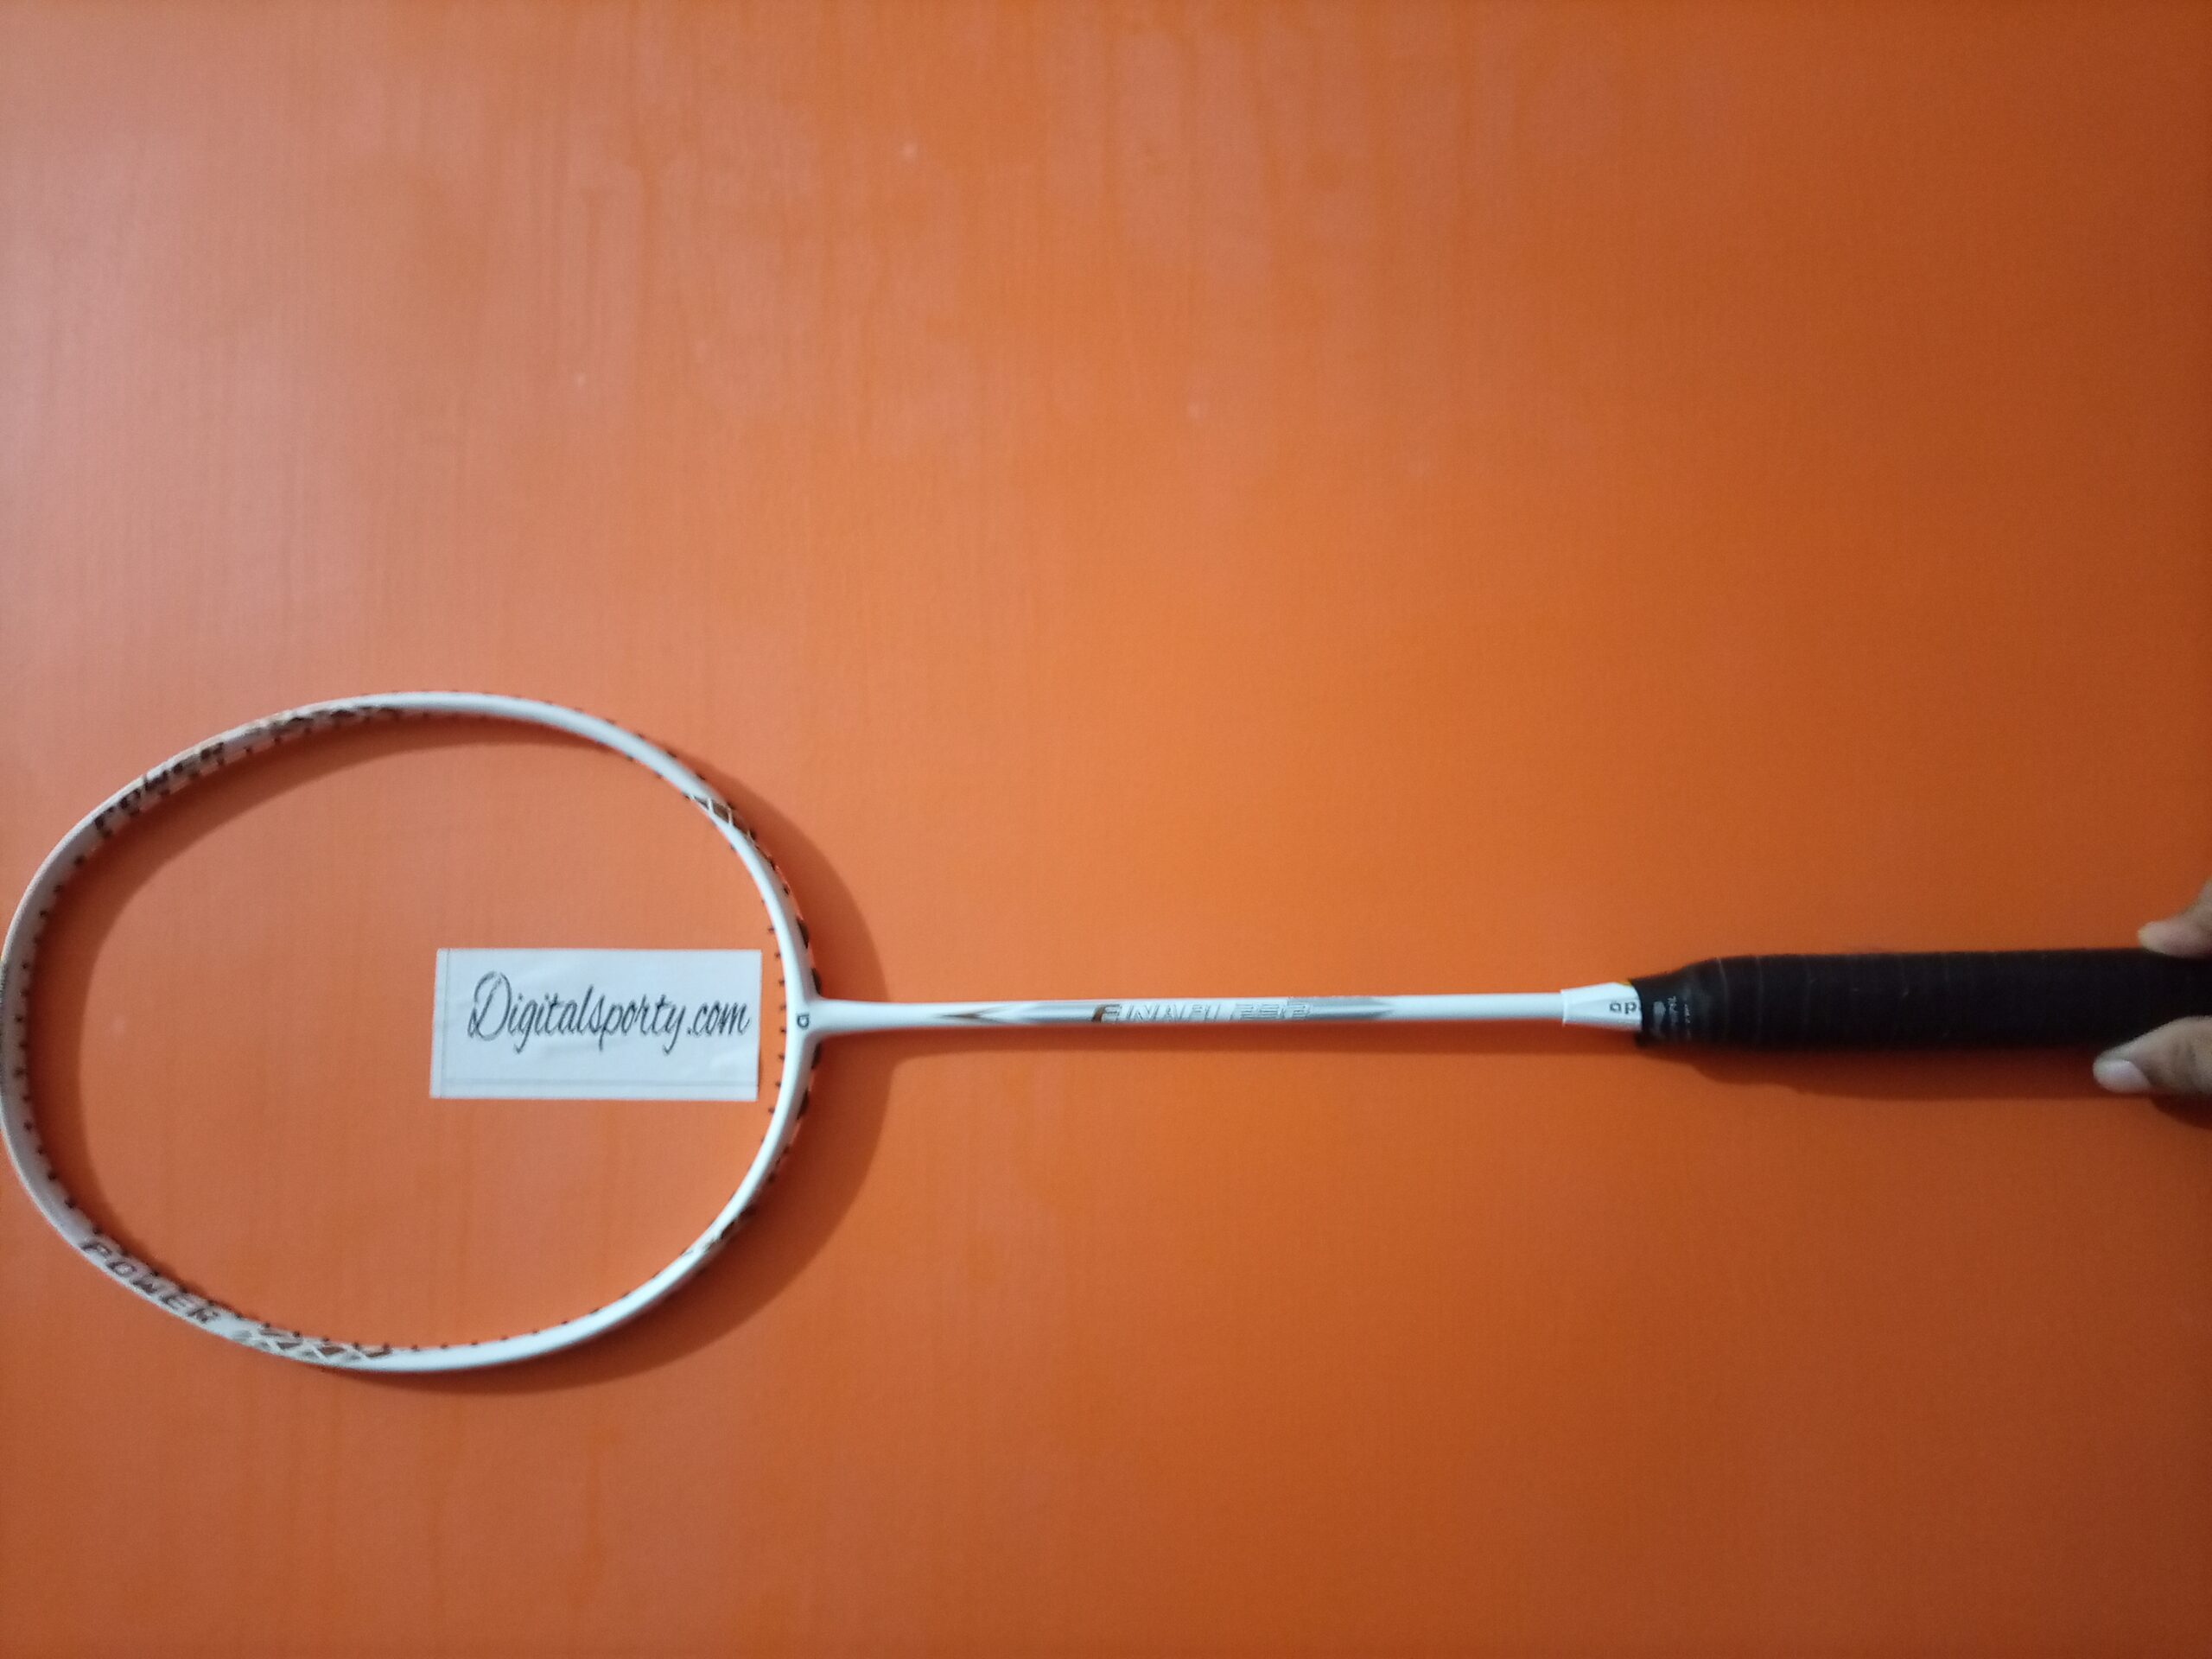 Apacs Finapi 232 Badminton racket review and specifications